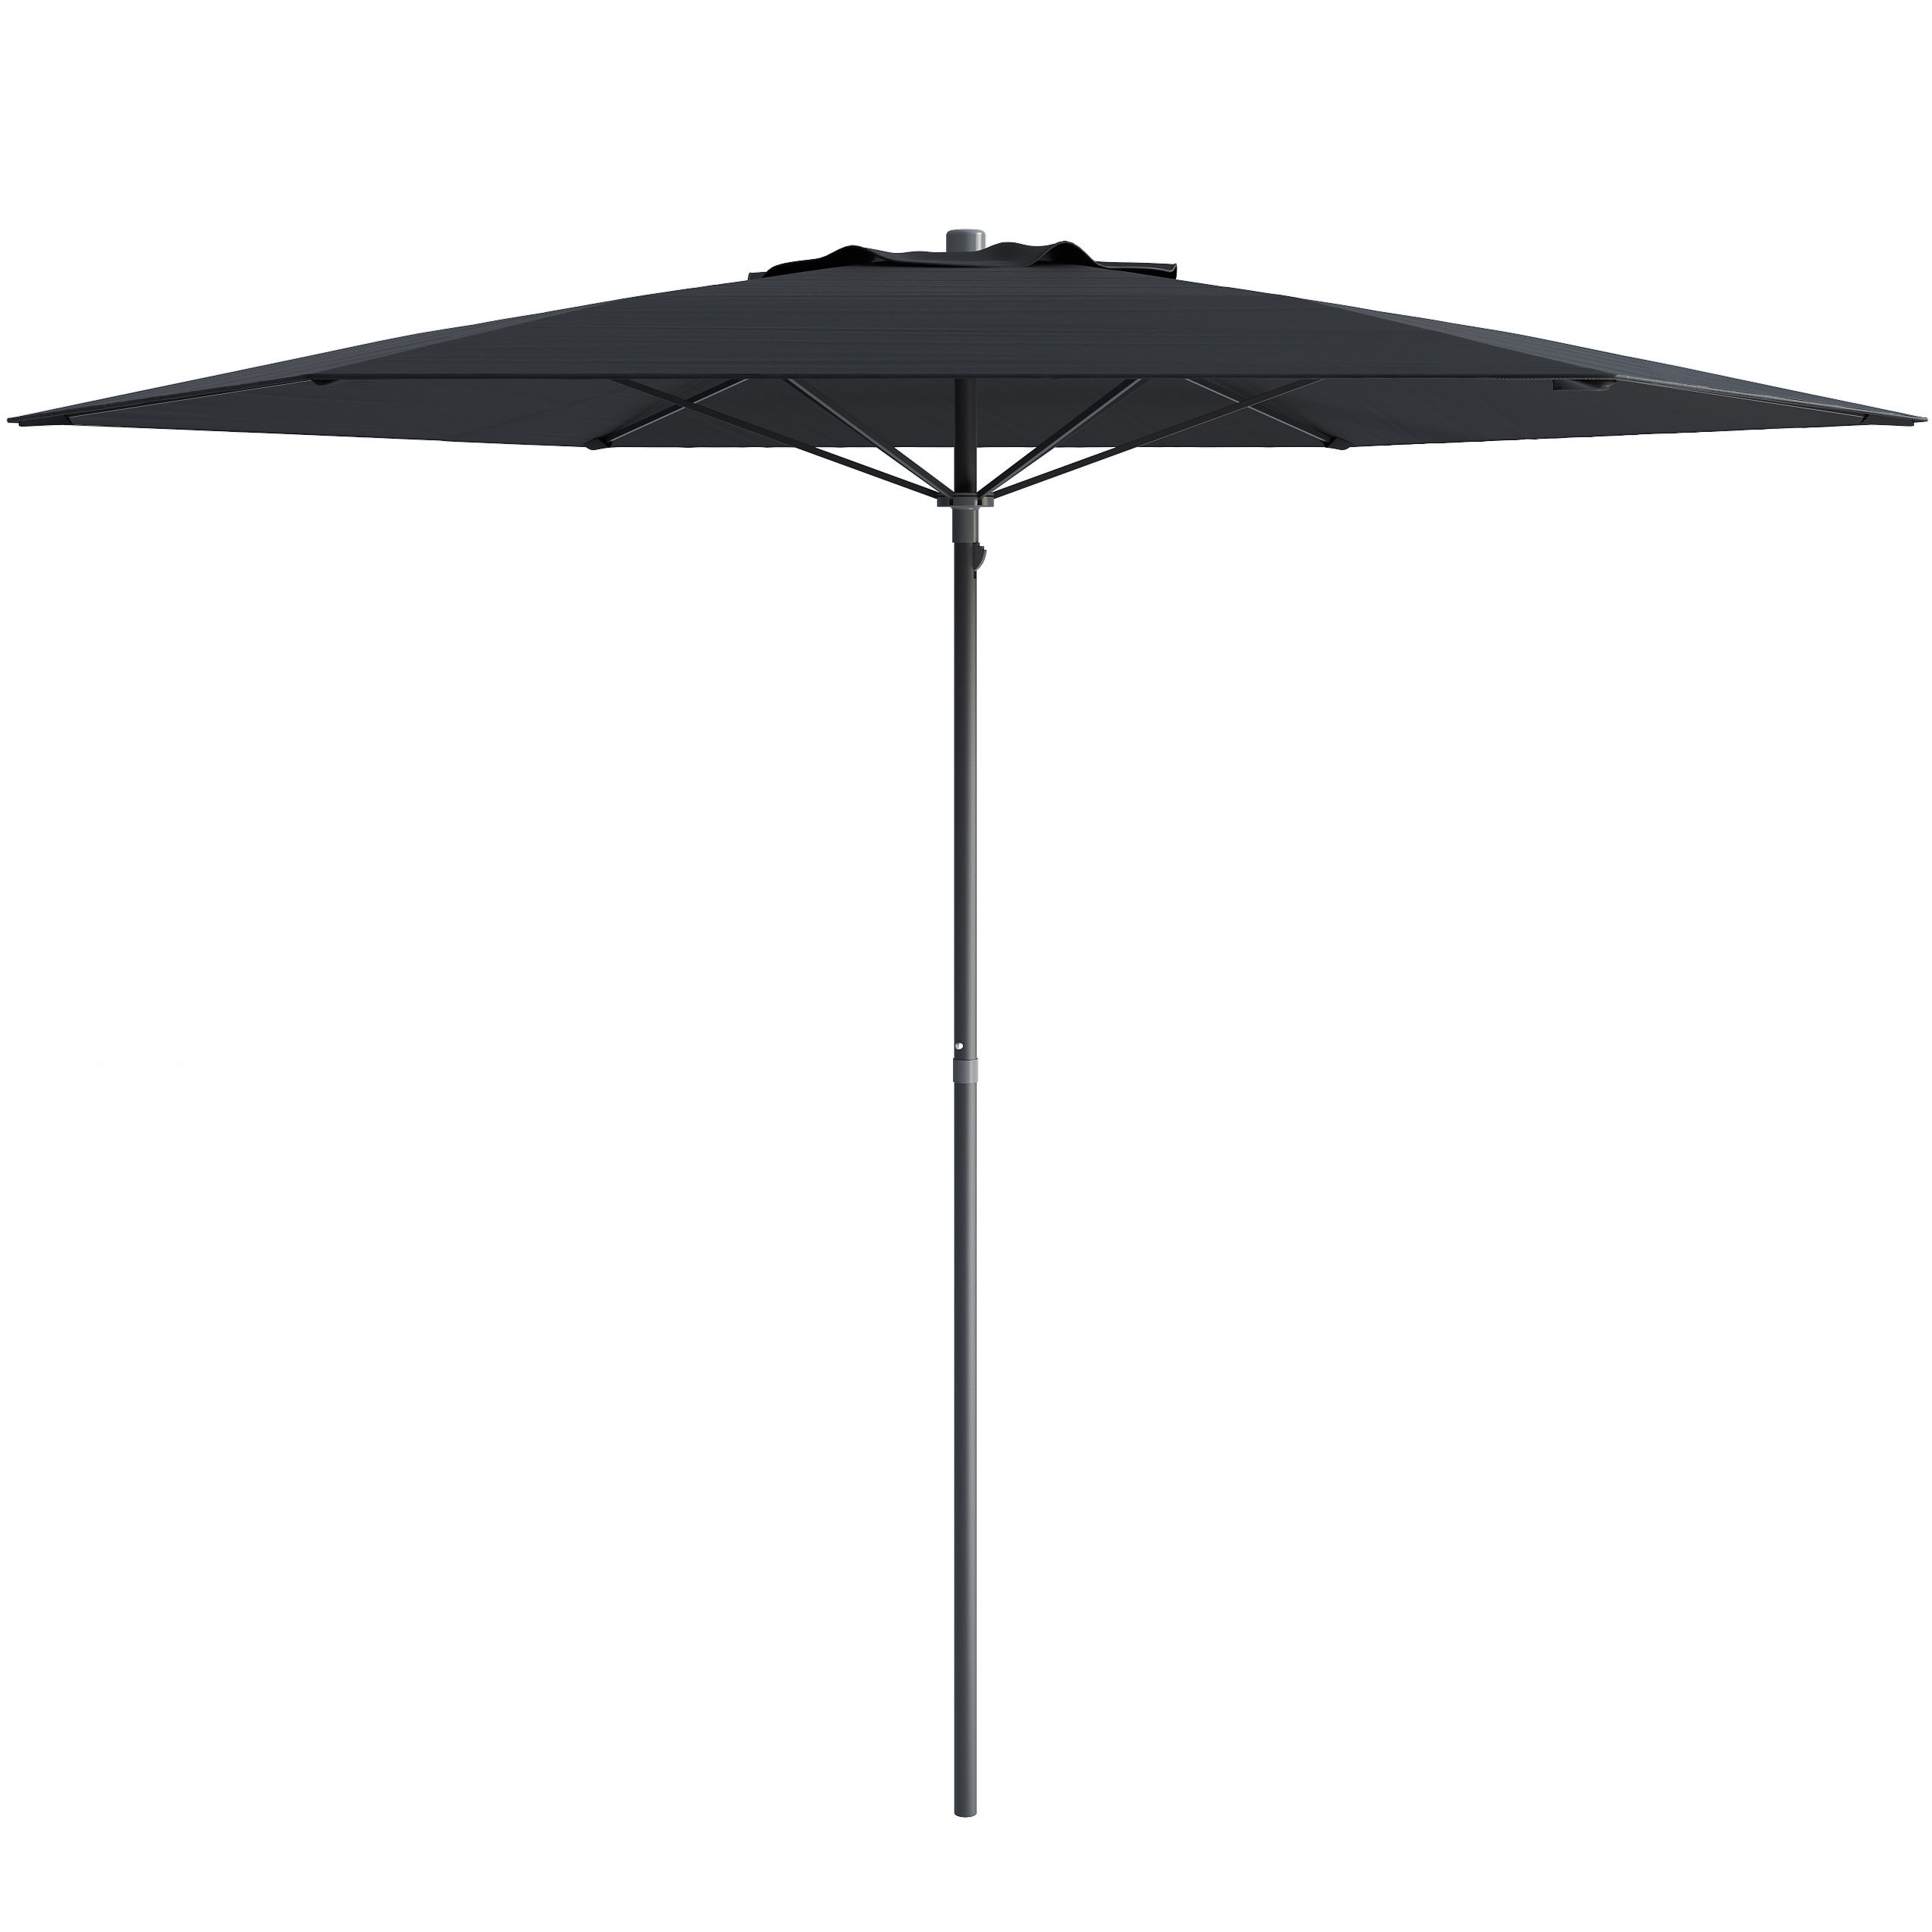 Exceptional Shop CorLiving UV And Wind Resistant Beach / Patio Umbrella   Free Shipping  Today   Overstock.com   14444352